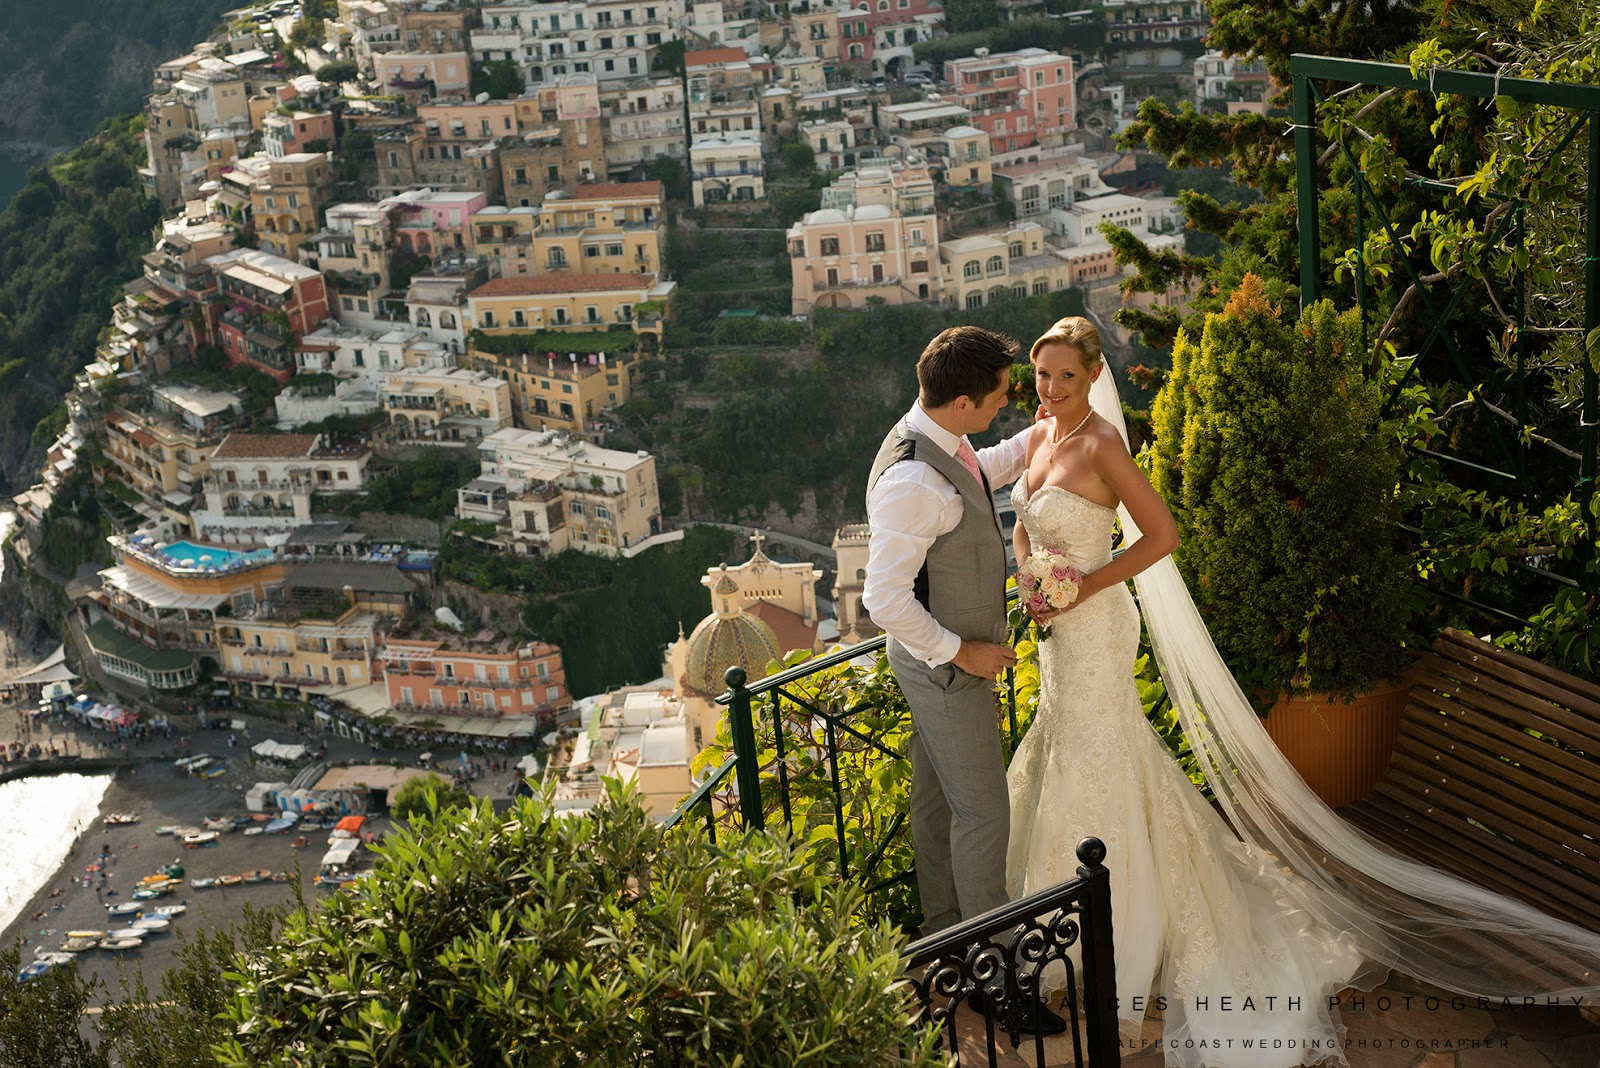 Elegant wedding celebration at Villa Oliviero in Positano